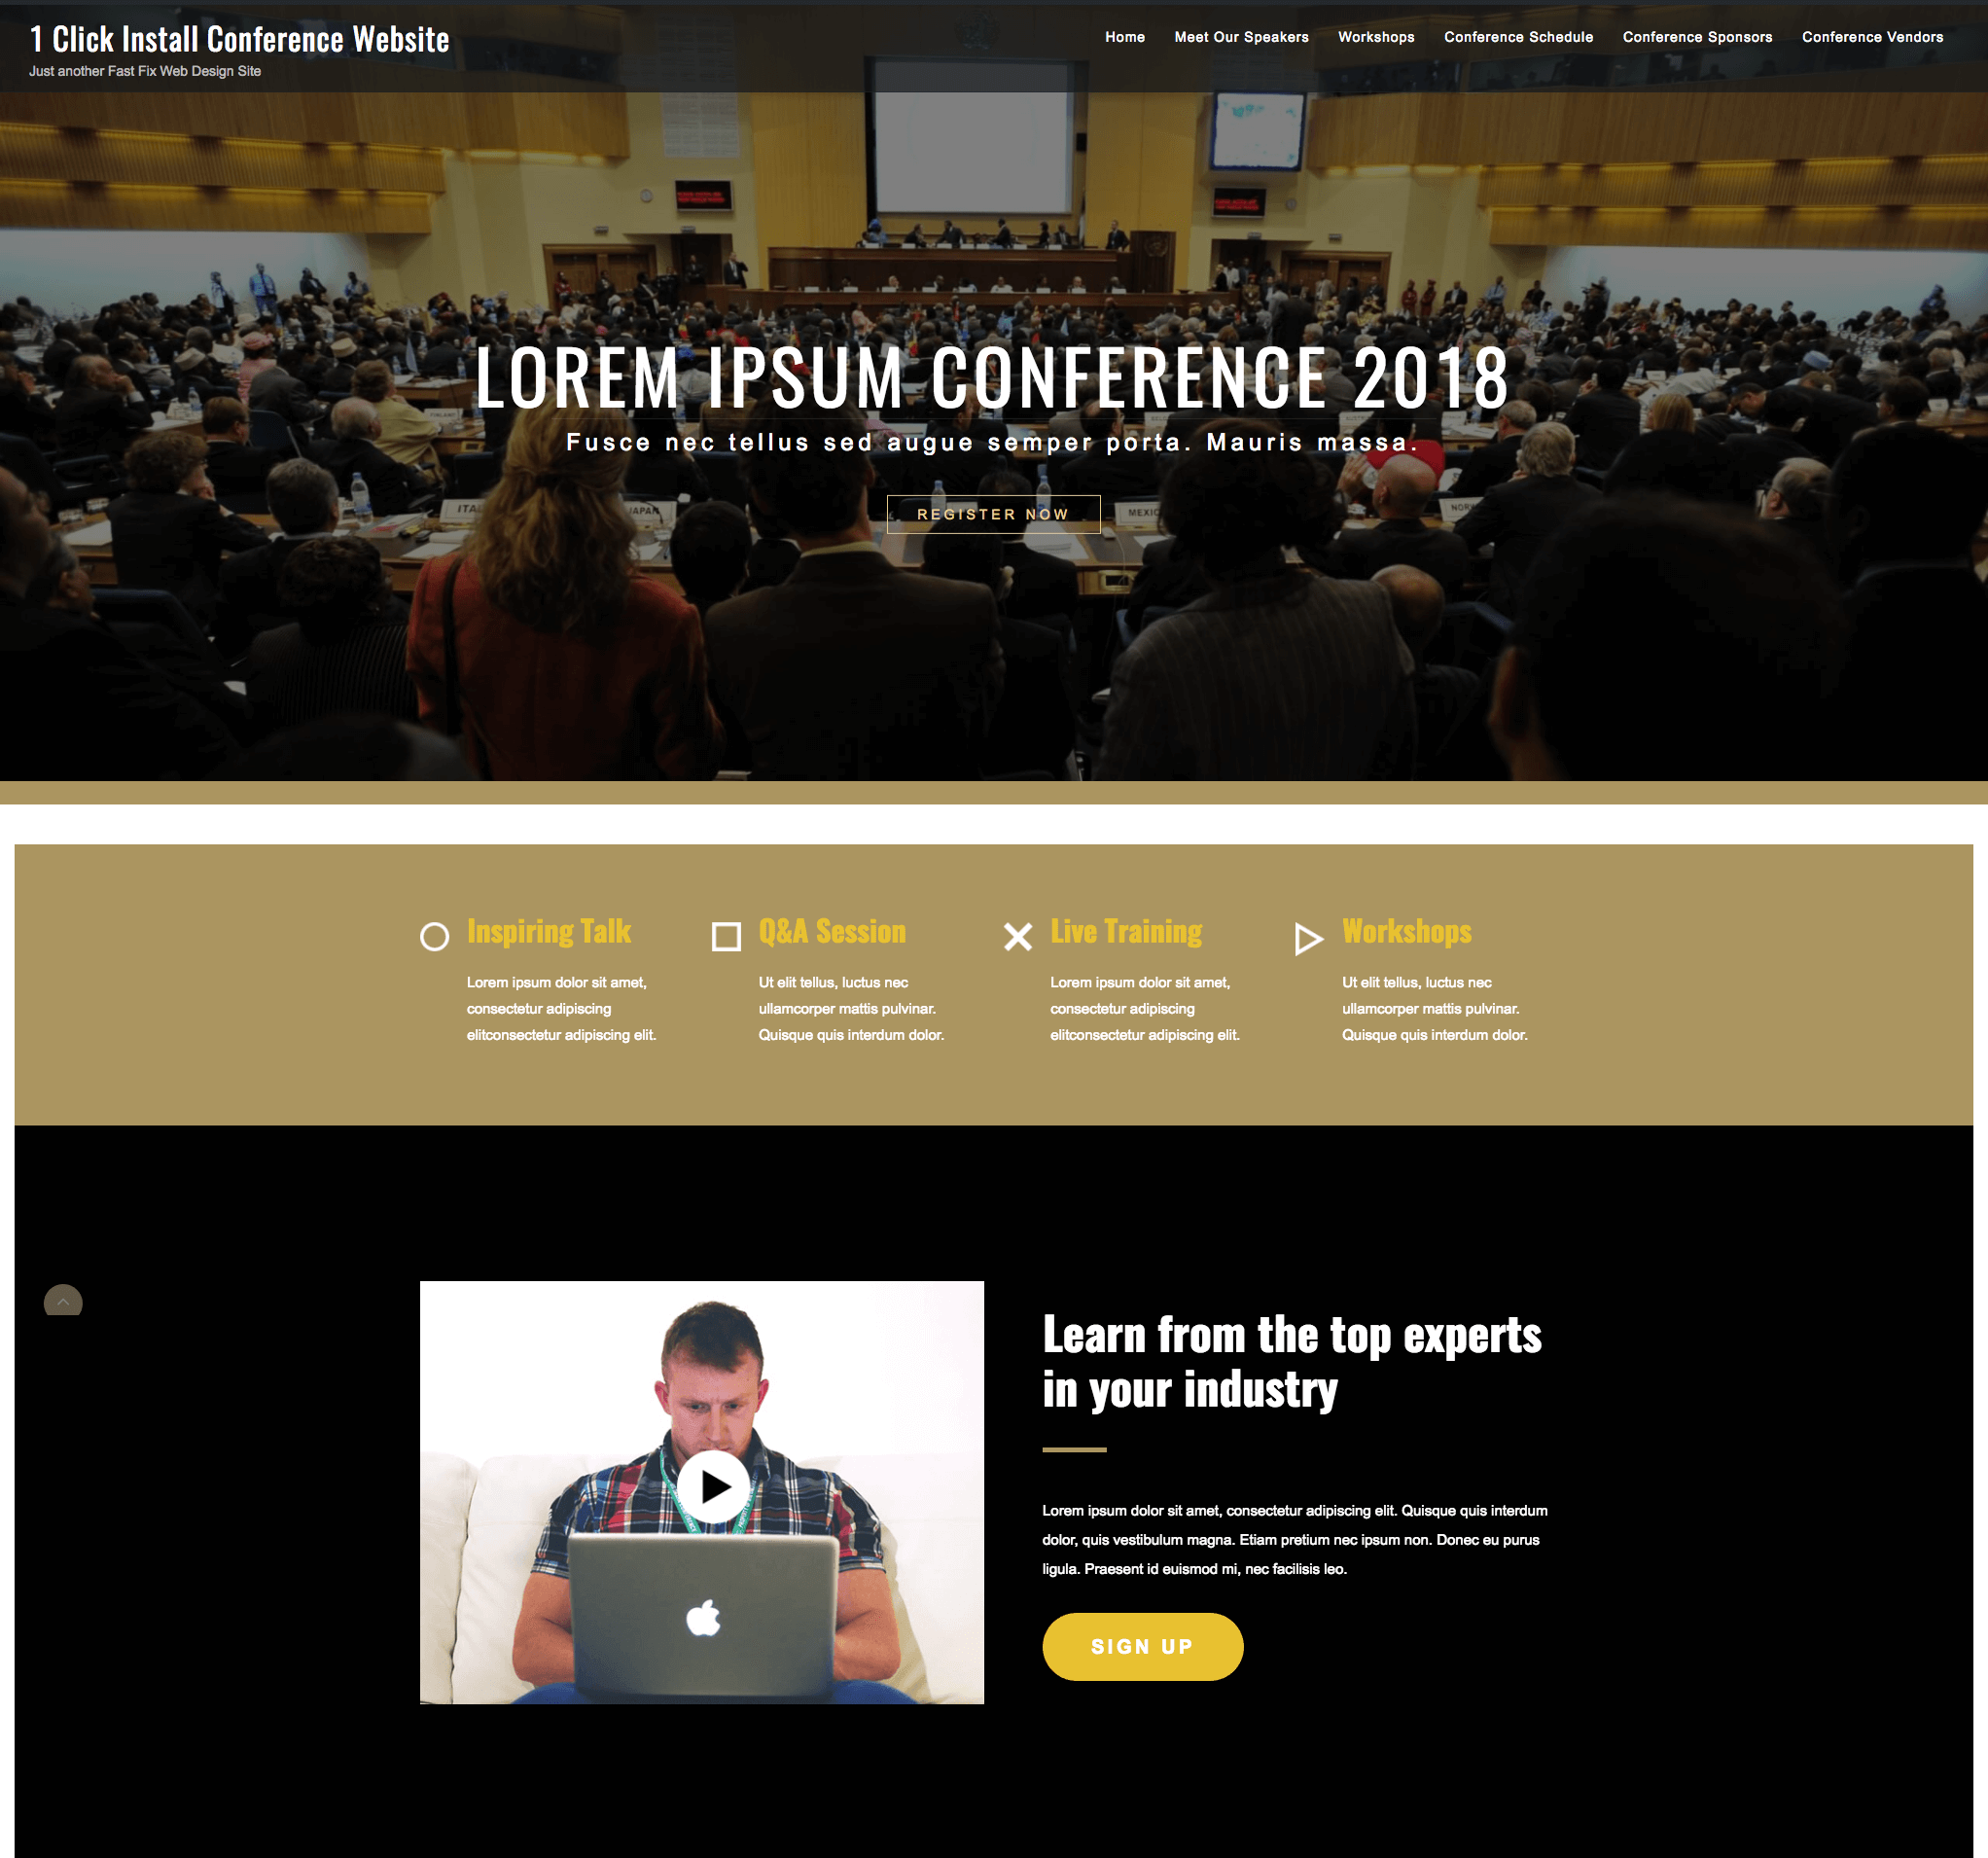 1 click conference website